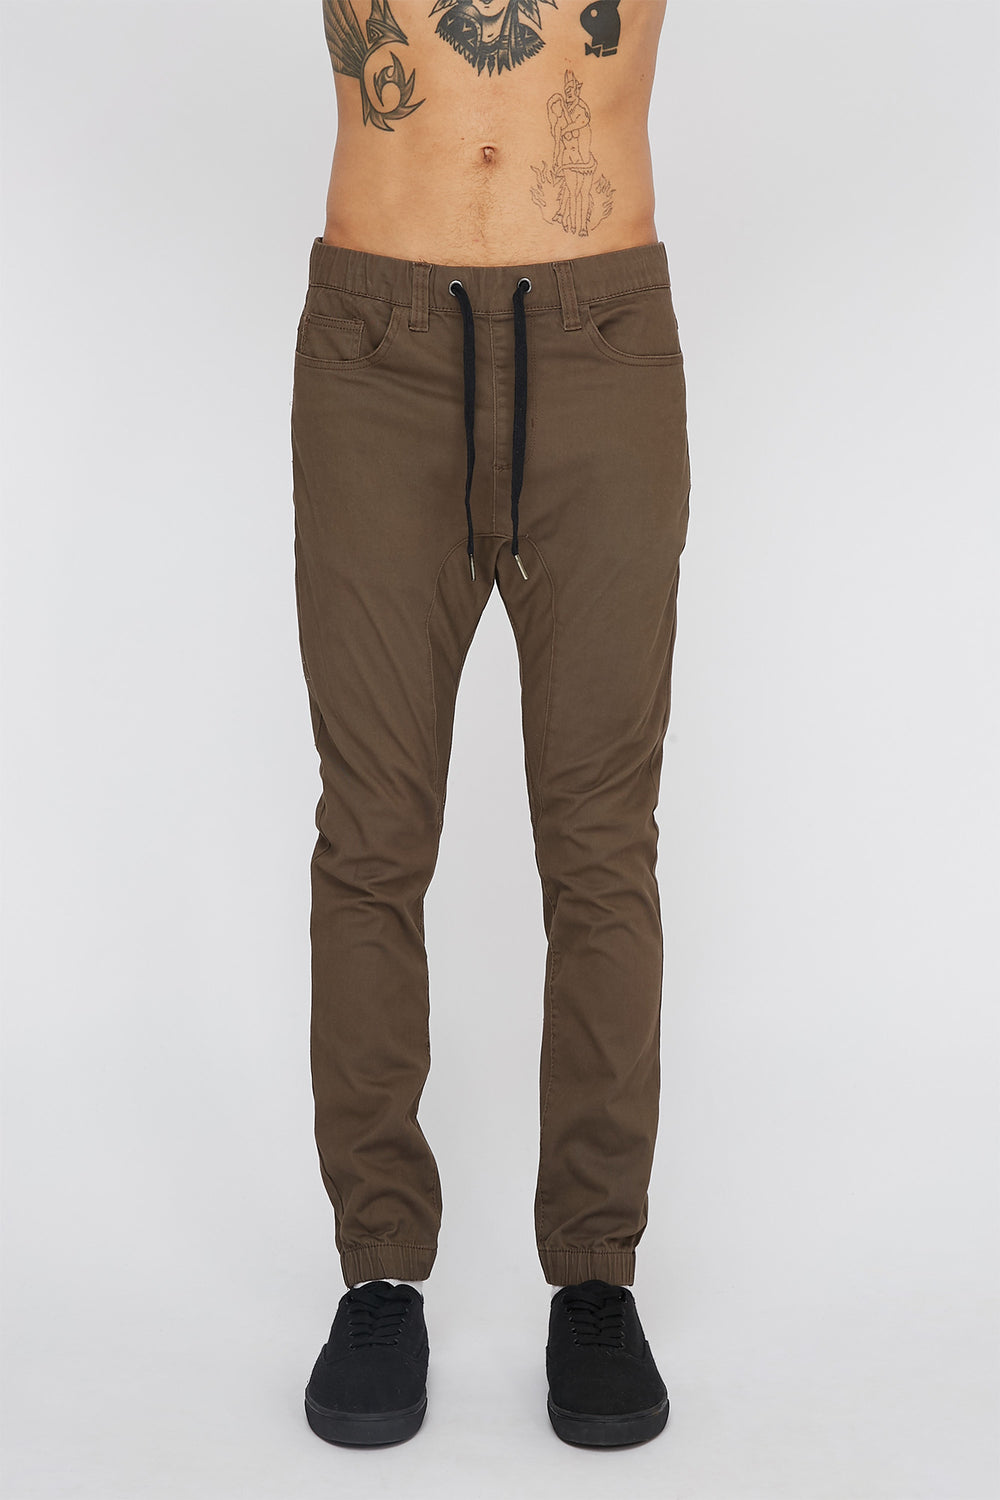 Zoo York Mens 5-Pocket Jogger Brown